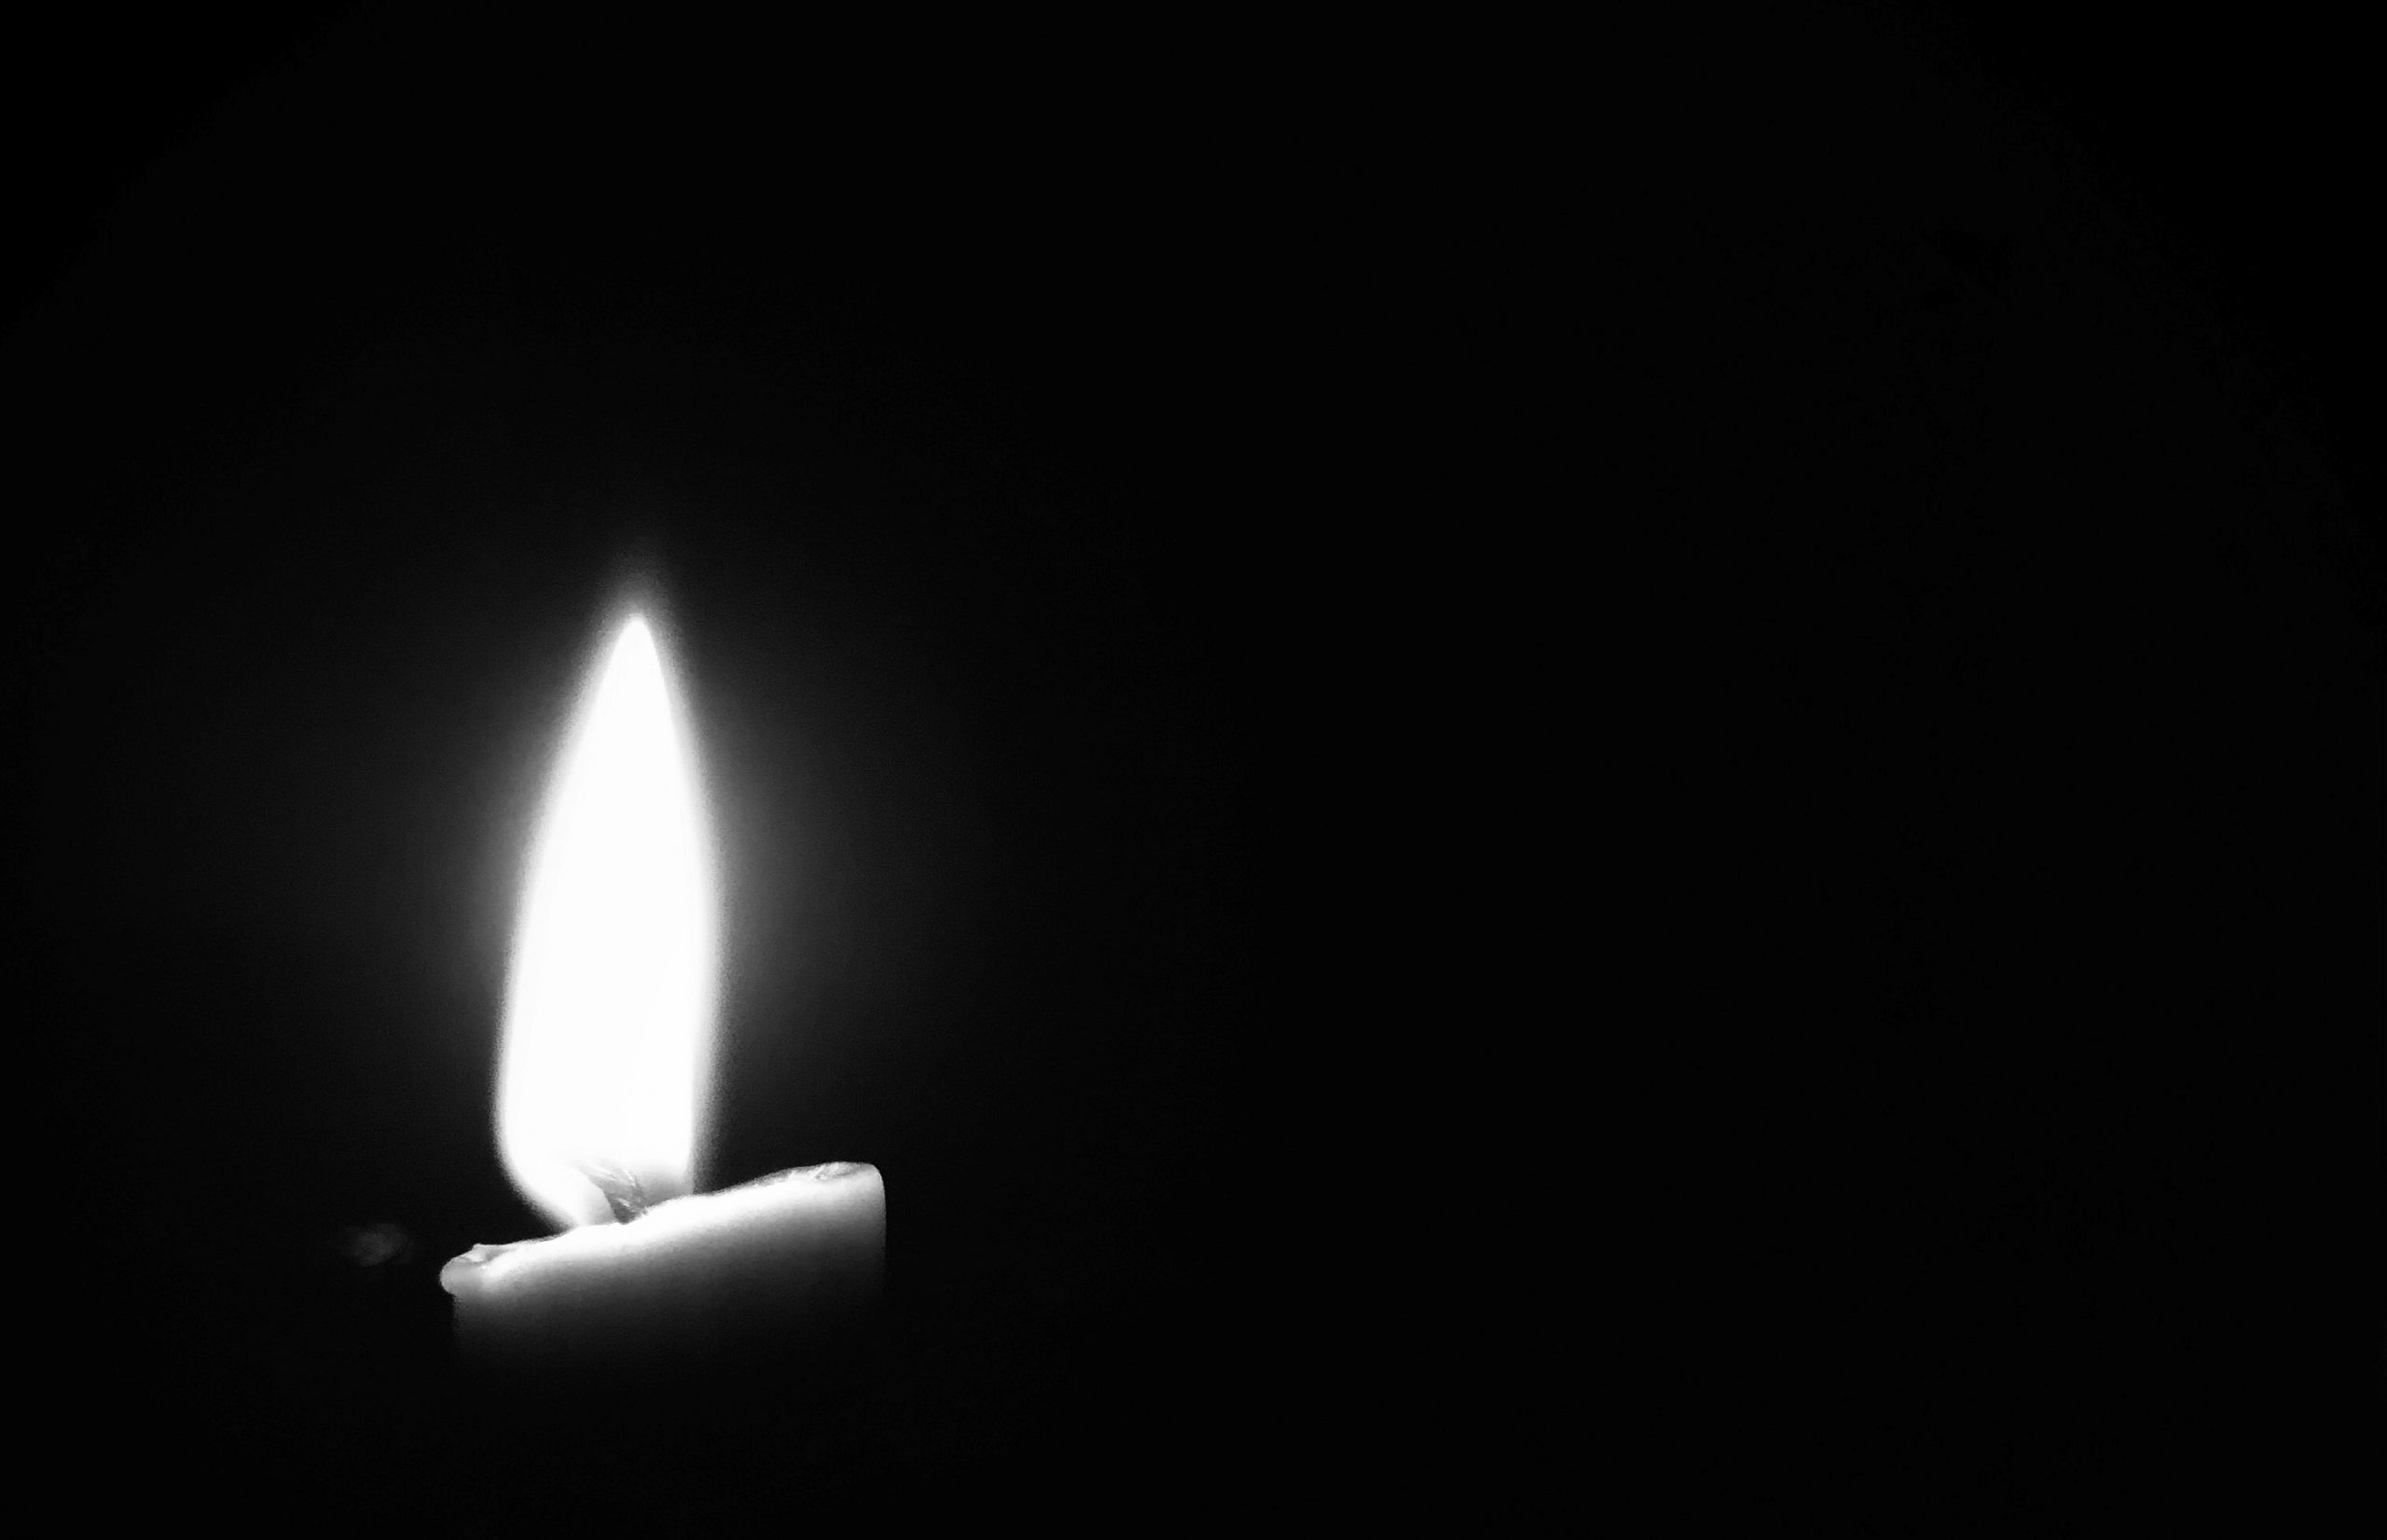 Candlelight appears amidst a black background.